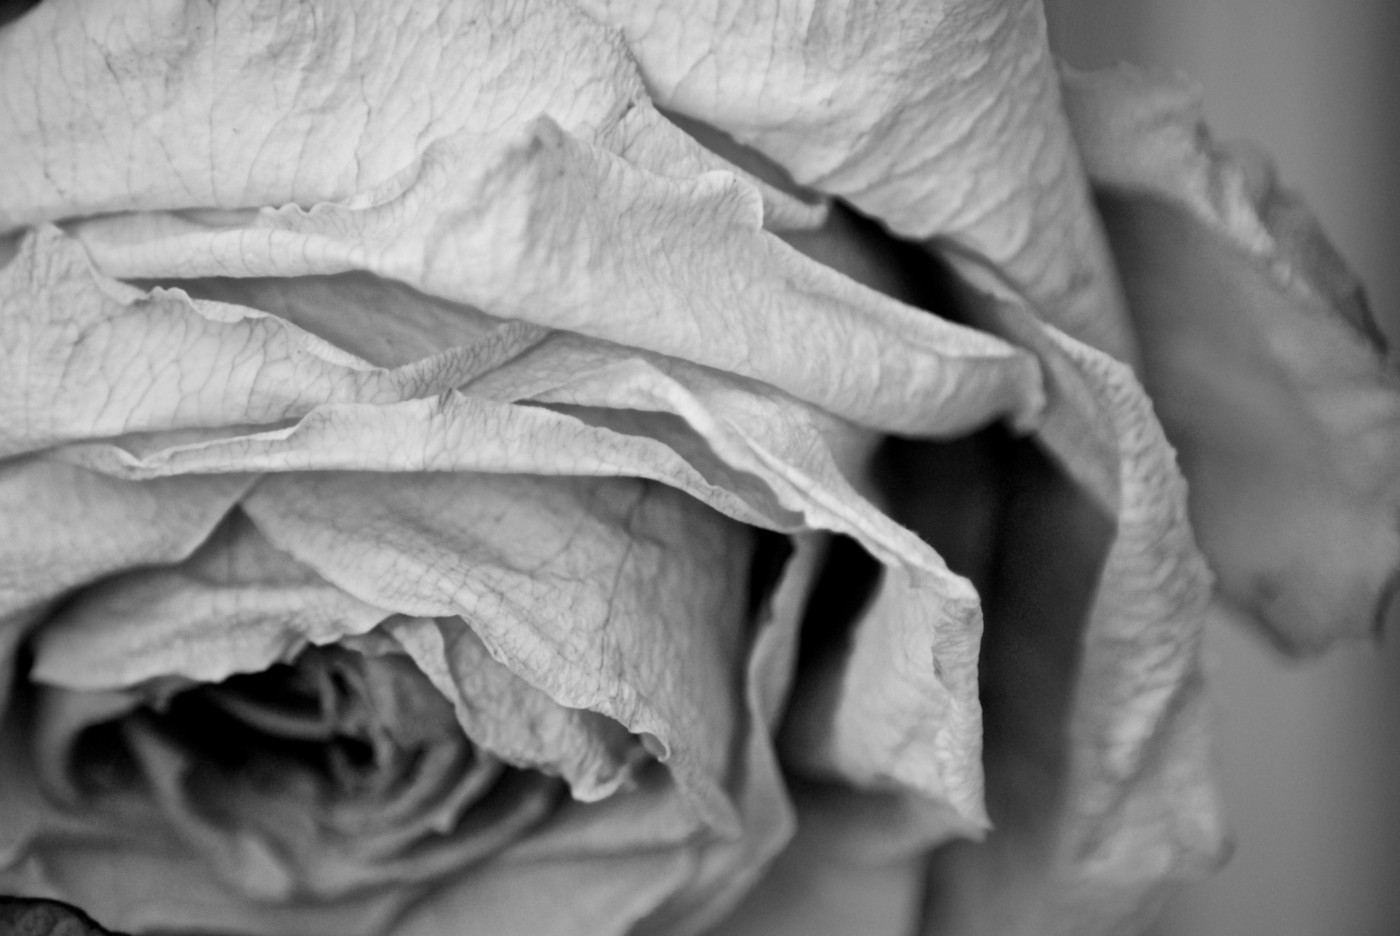 Black and white image of a dried rose.